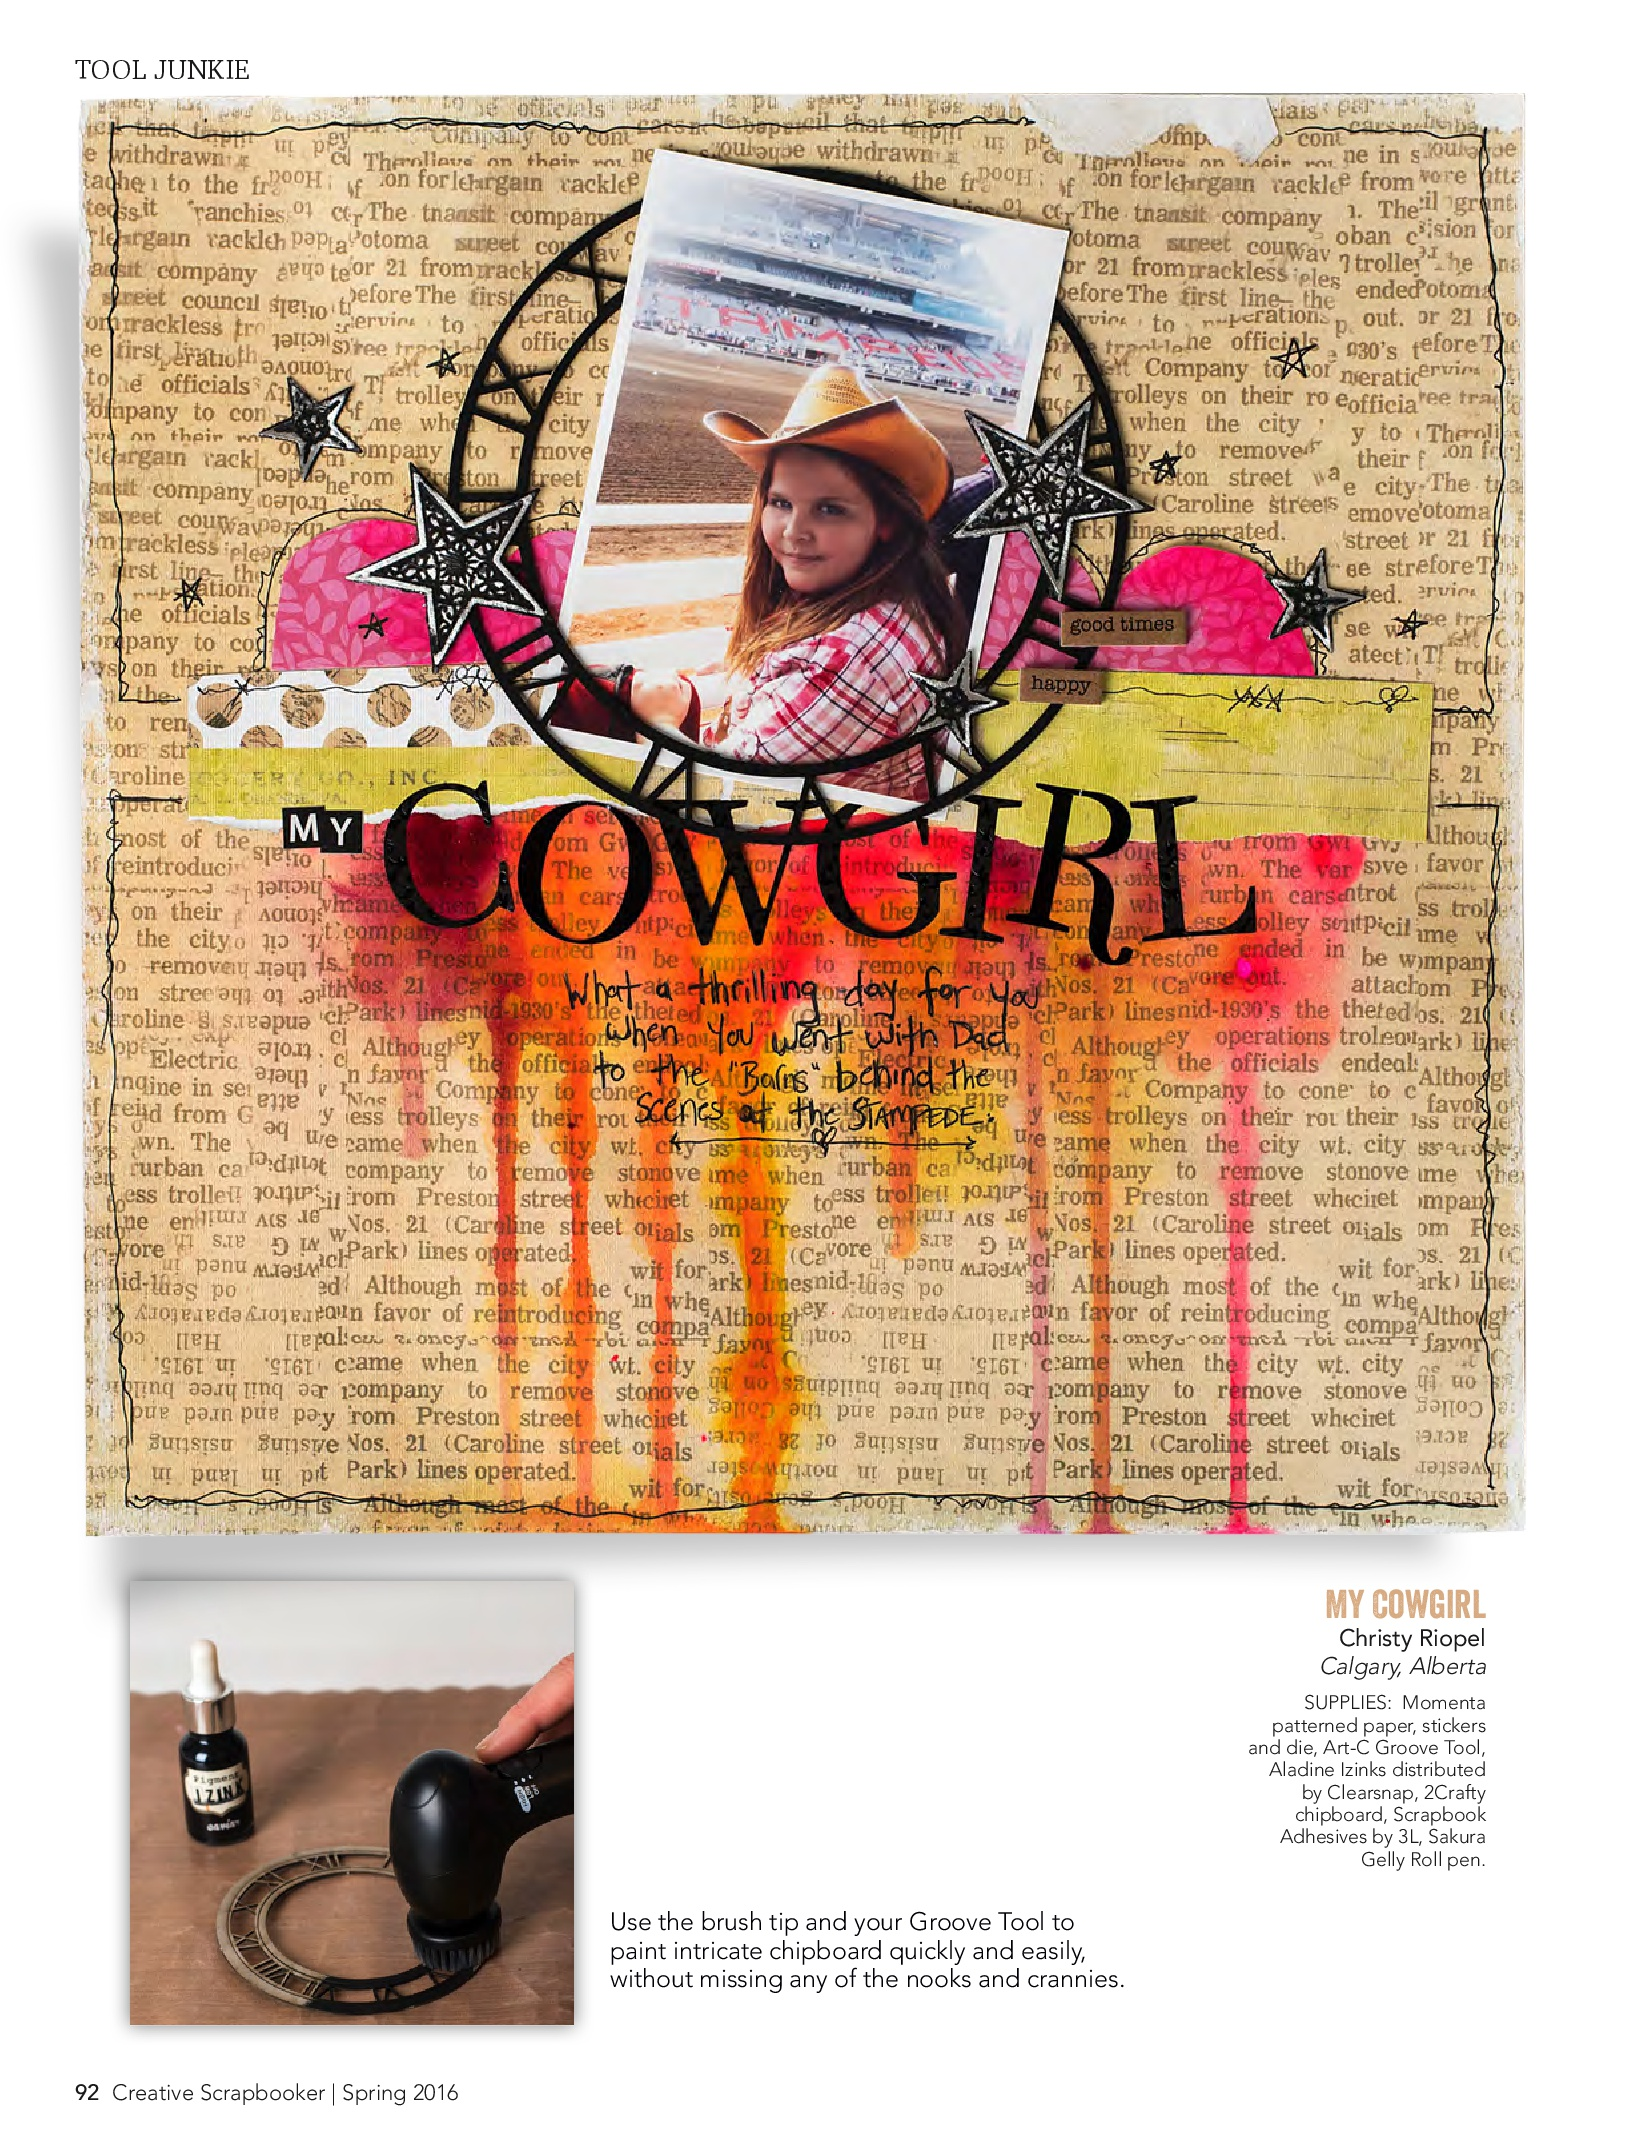 Scrapbook layout designed by Christy Riopel featuring the Momenta Groove Tool of a girl in a cowboy hat at the Calgary stampede